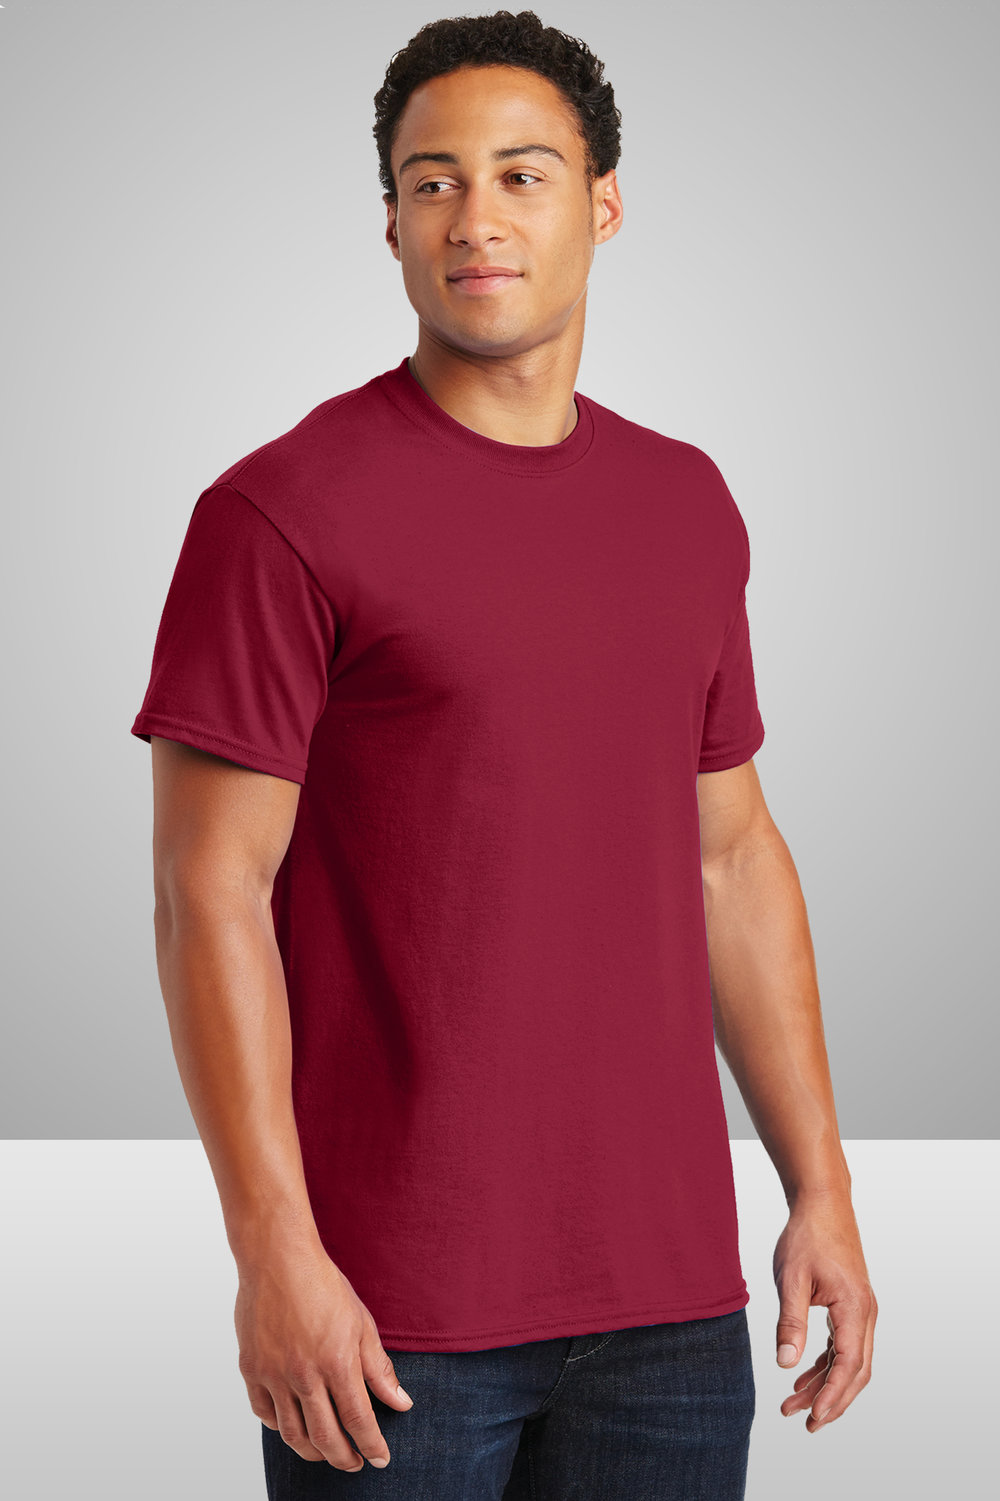 Gildan Ultra Cotton T-Shirt    $8.14 each for 25 items  one color front or back